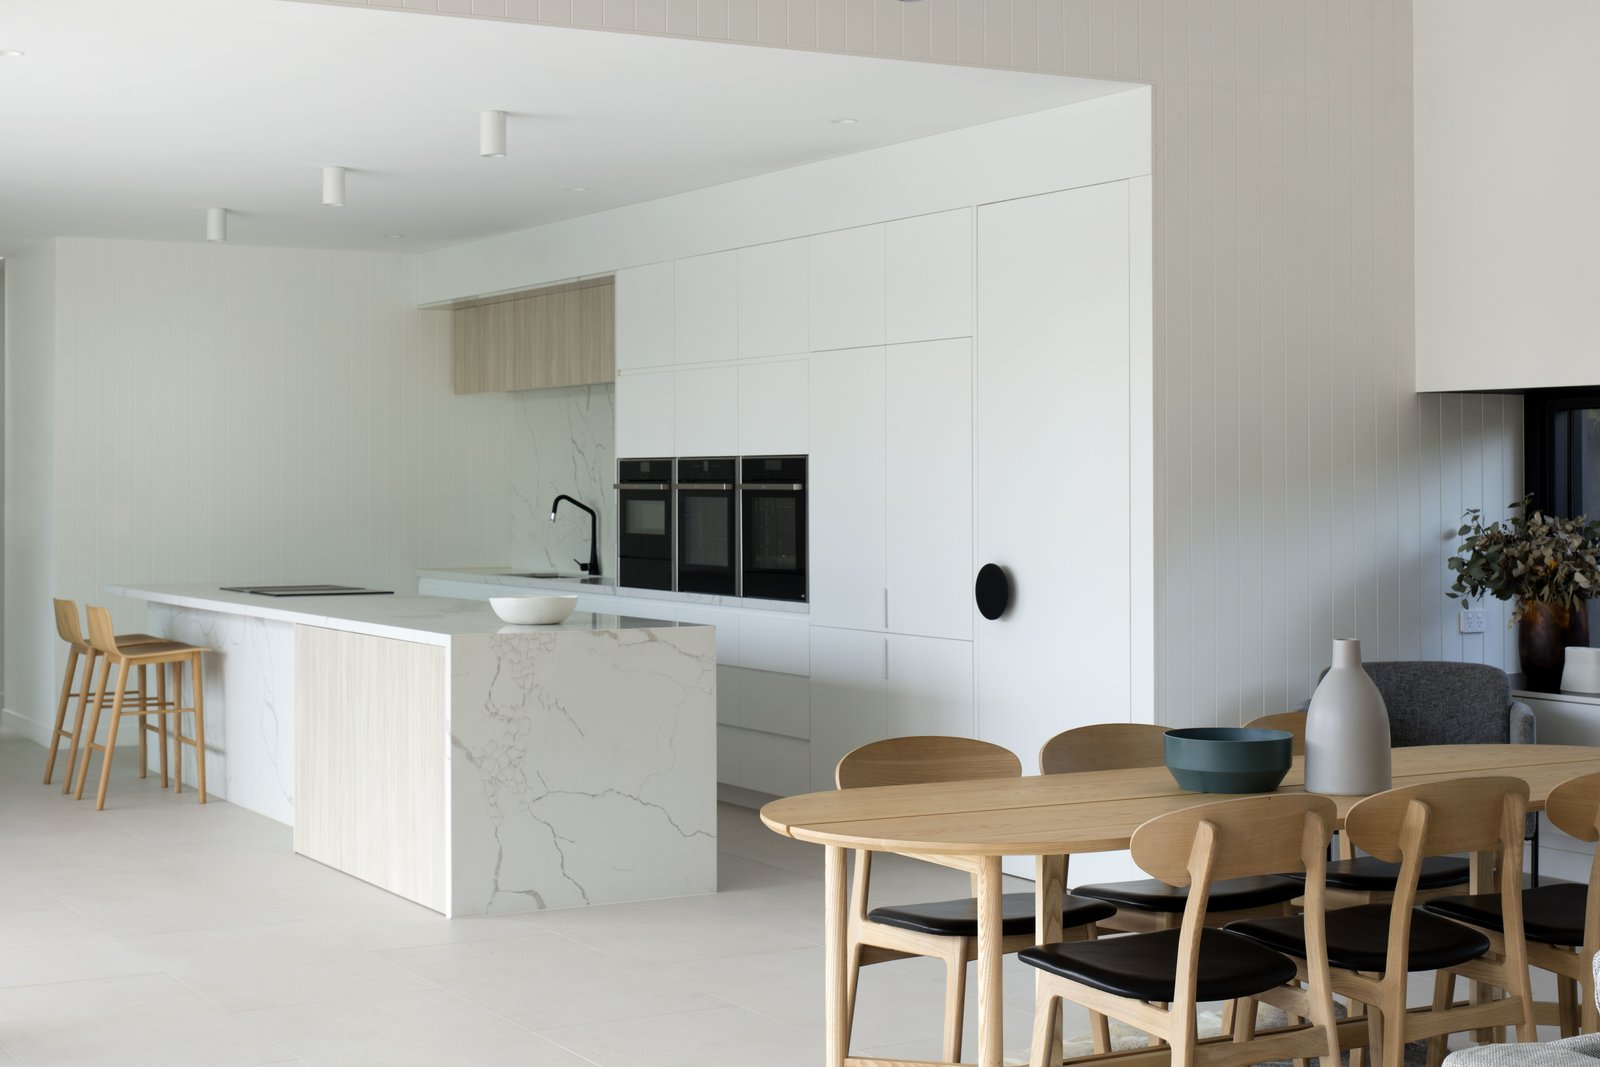 Kitchen, Ceiling, Stone, Stone Slab, Wall Oven, Cooktops, Ceramic Tile, and White  Kitchen Cooktops Wall Oven Ceramic Tile Stone Slab White Photos from Warraweena